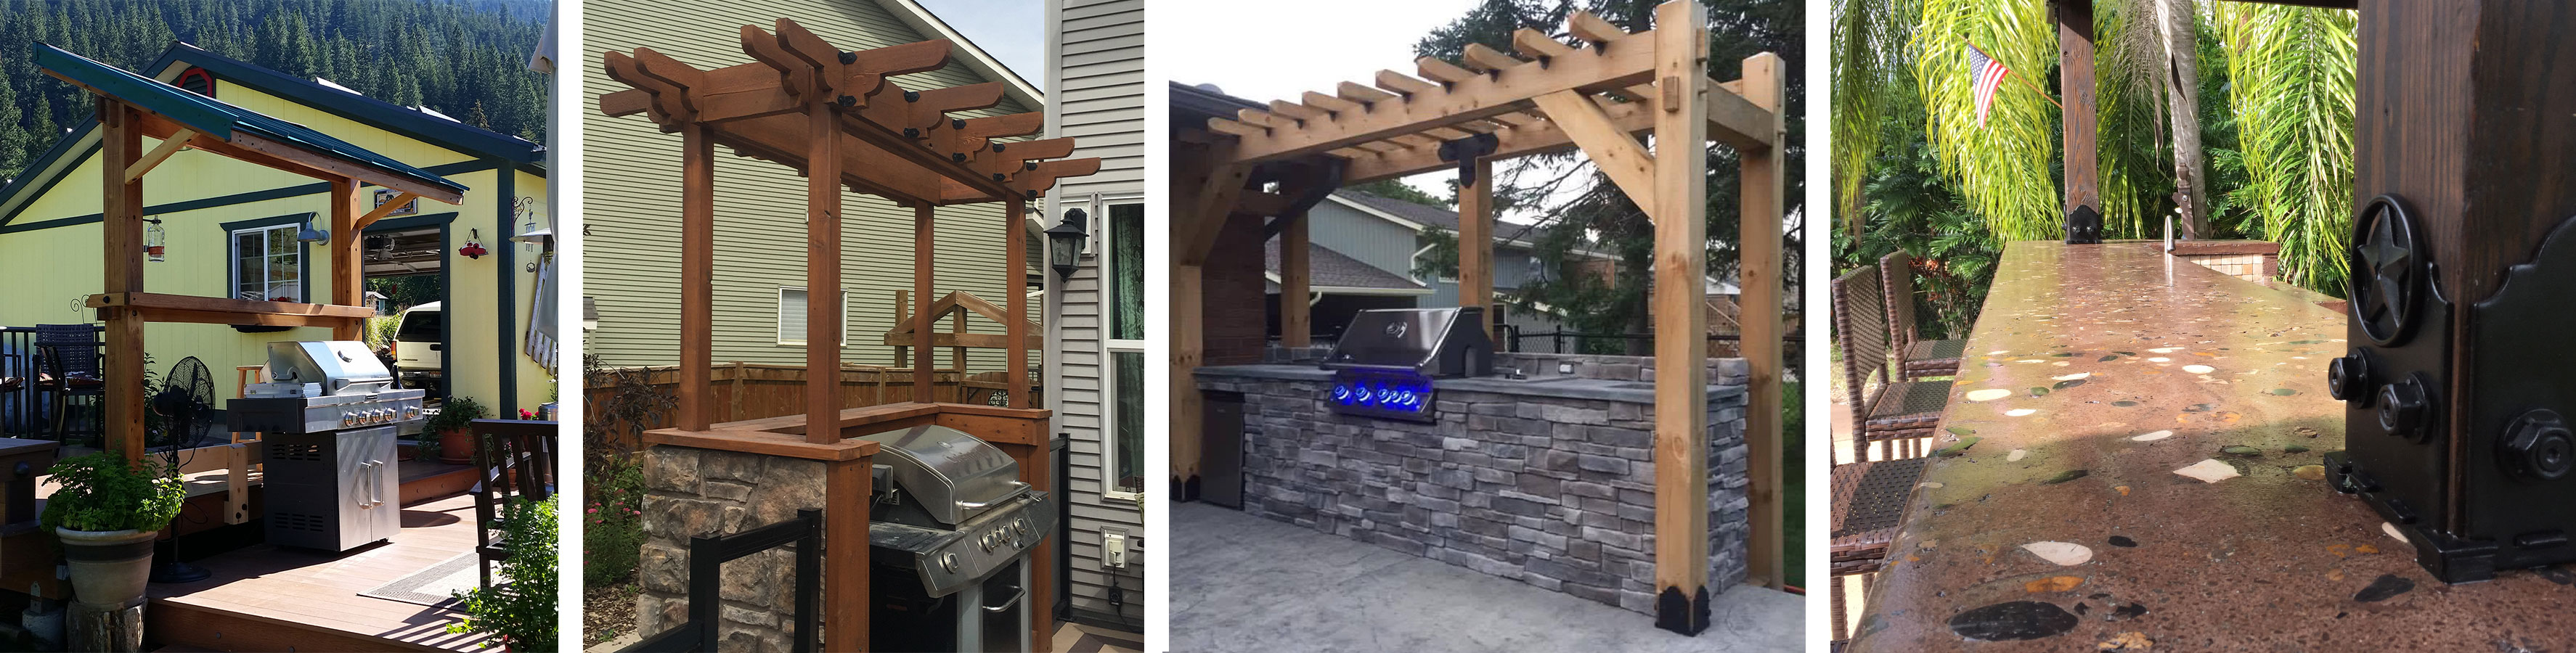 Barbecue Shelter Grill Outdoor Kitchen Project Plans